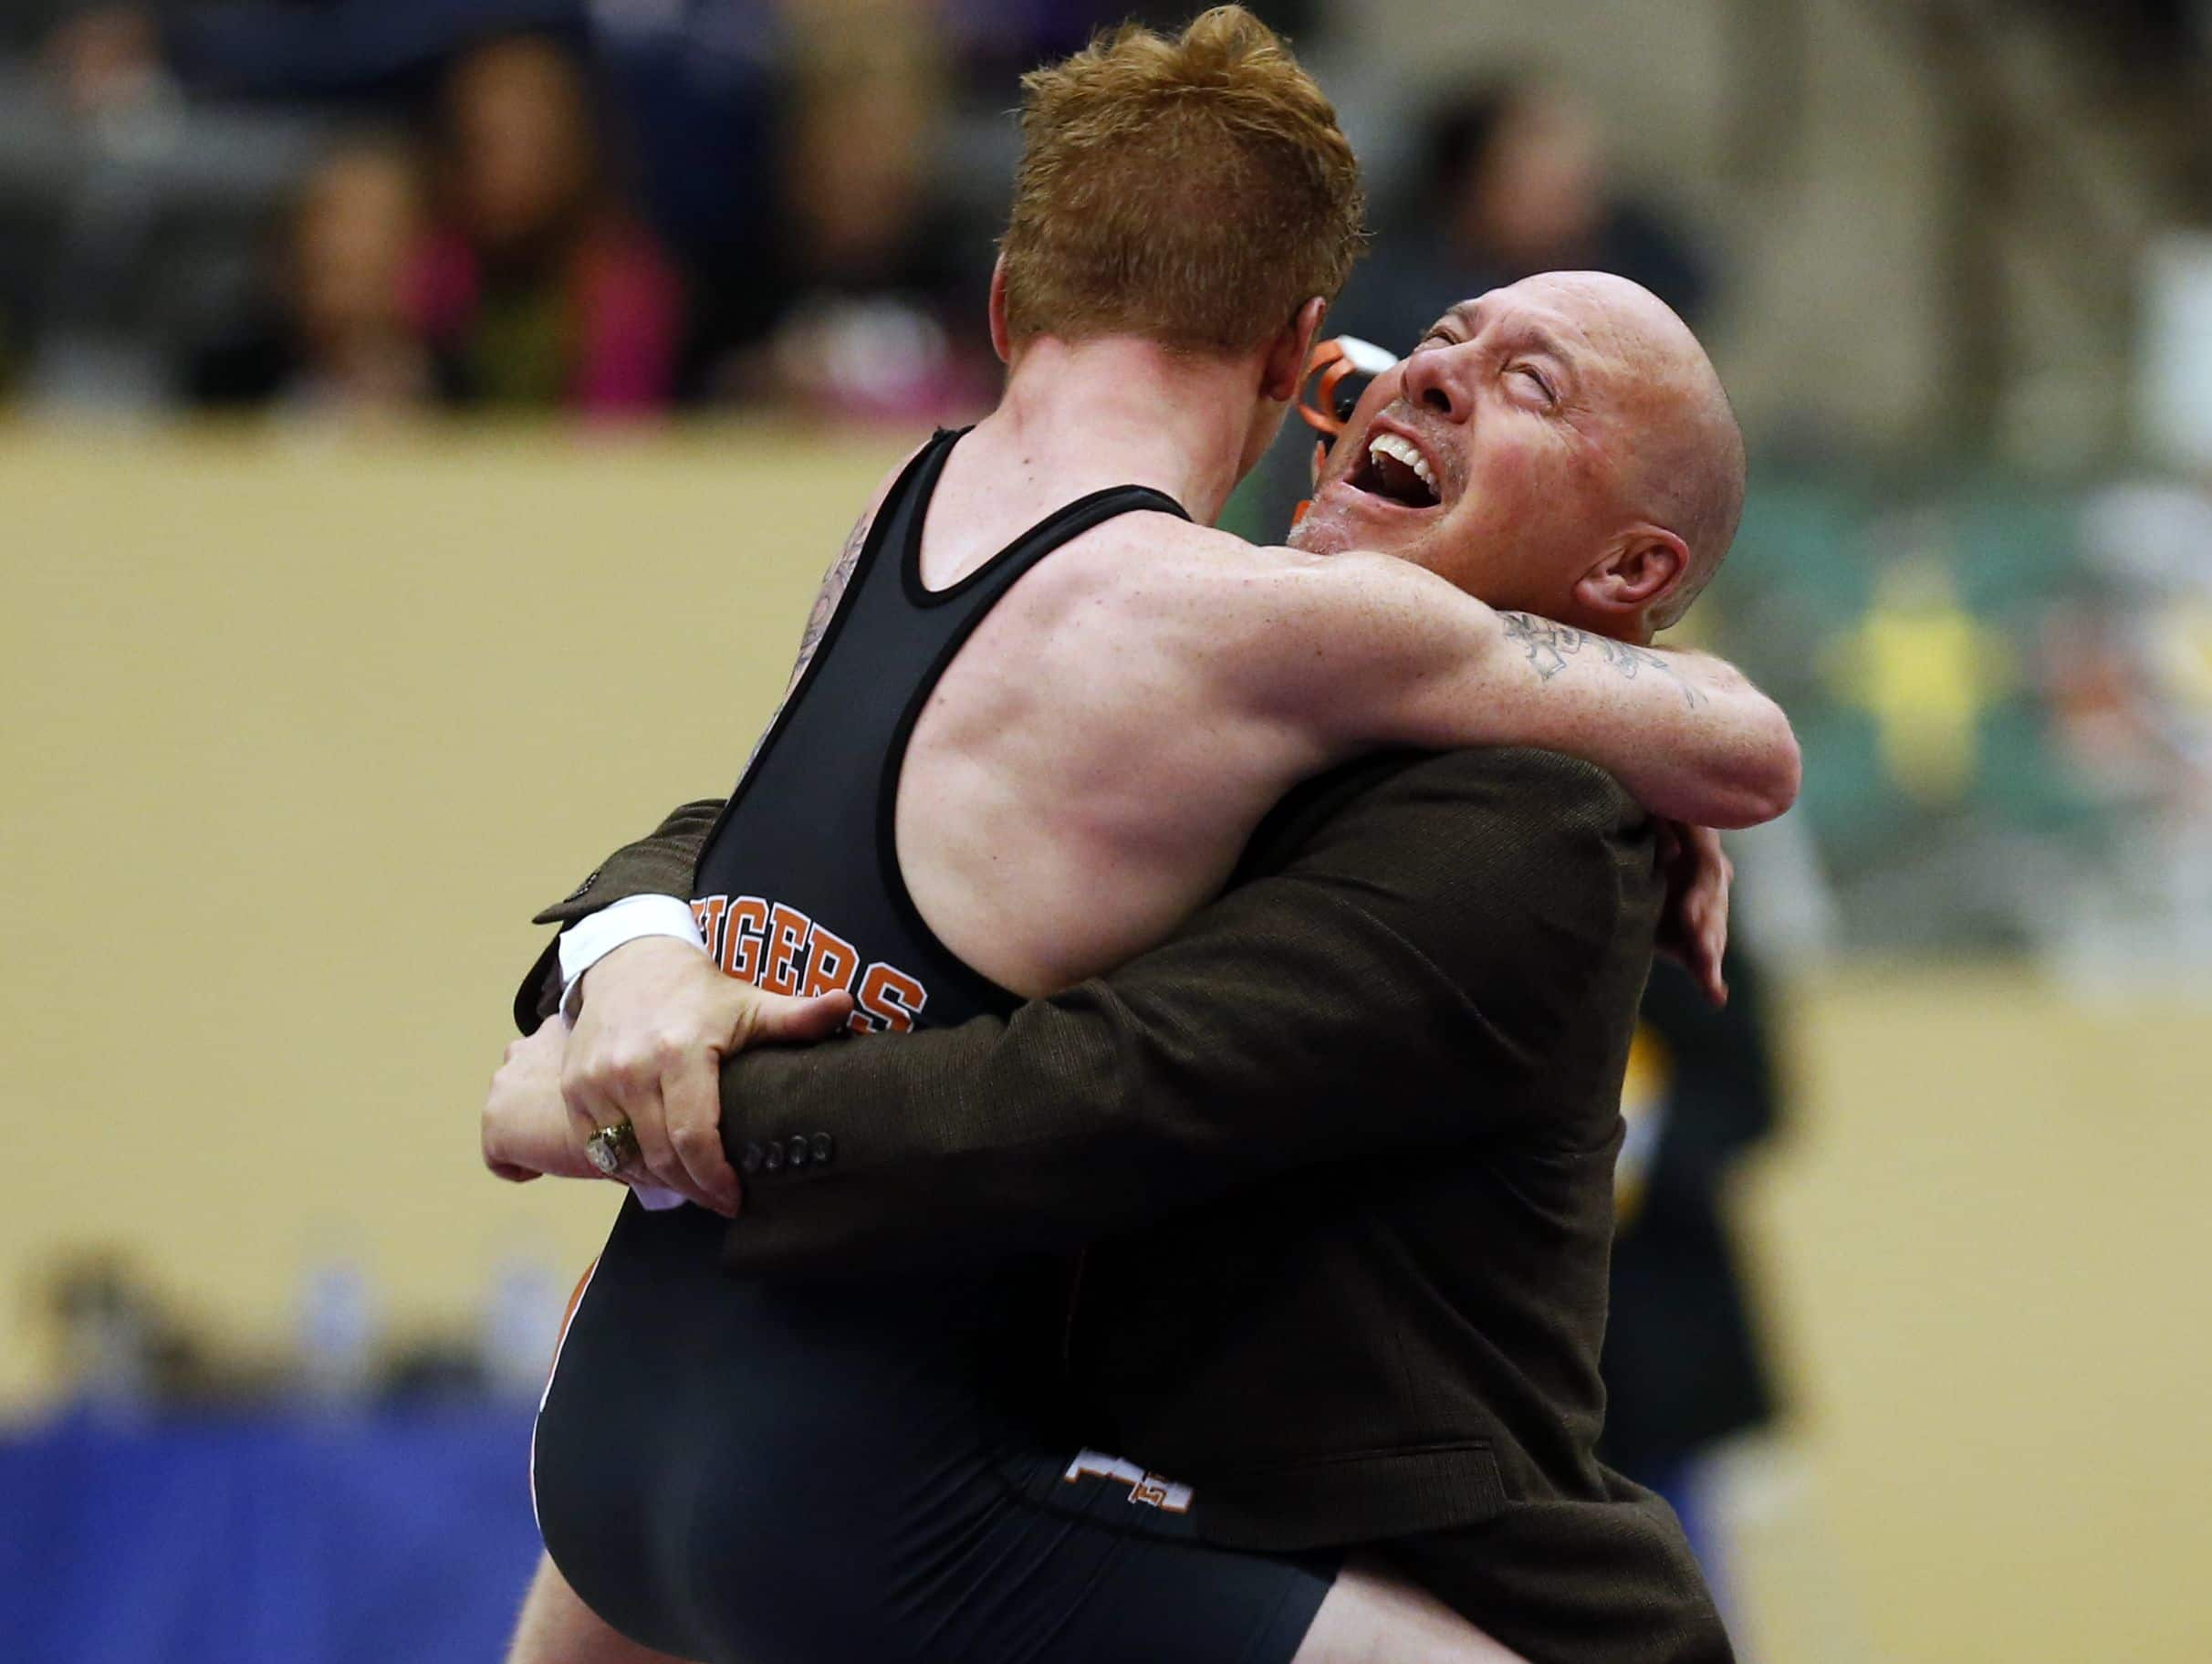 Fern Creek's AJ Binder celebrates with his coach Mark Hitchings after winning the KHSAA State Championship in the 138 pound weight class. Feb. 20, 2016